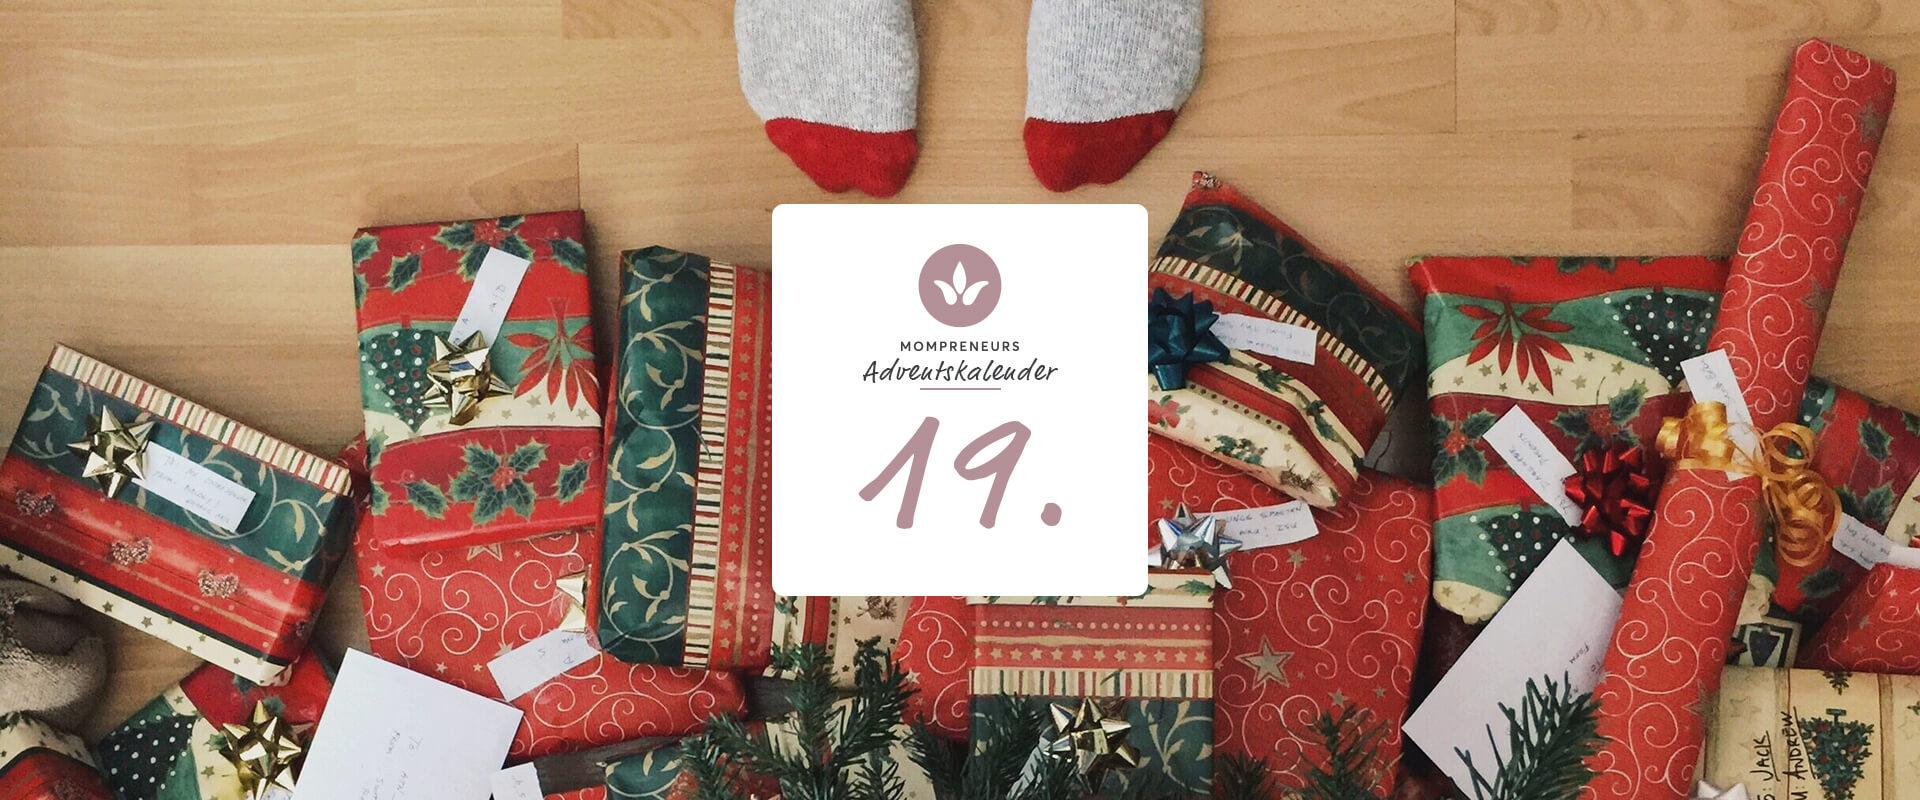 MomPreneurs Adventskalender Katrin Hill